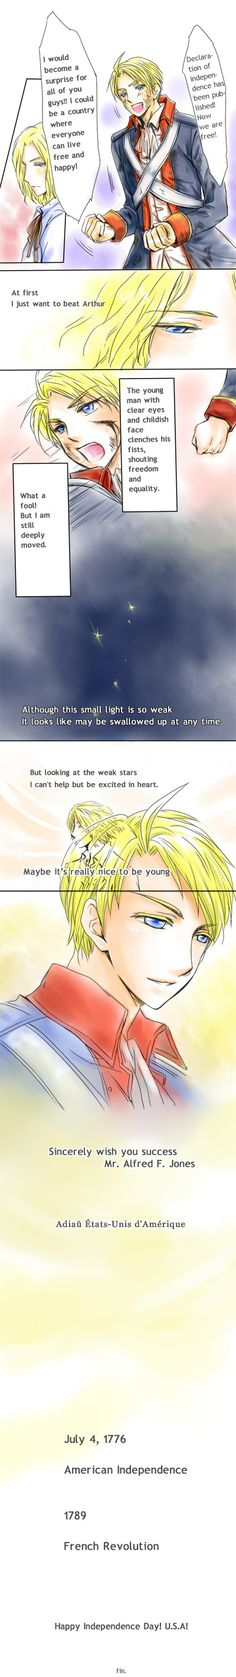 """APH manga.Francis,Alfred. Star by Vladimirka.deviantart.com on @deviantART - I really like how this shows Francis' shifting opinion about the American Revolution - and how true to history it is. The French initially saw it as yet another theatre in their conflict against Britain, but then the French veterans who helped fight for American independence came back...and they'd adopted the same ideas."""